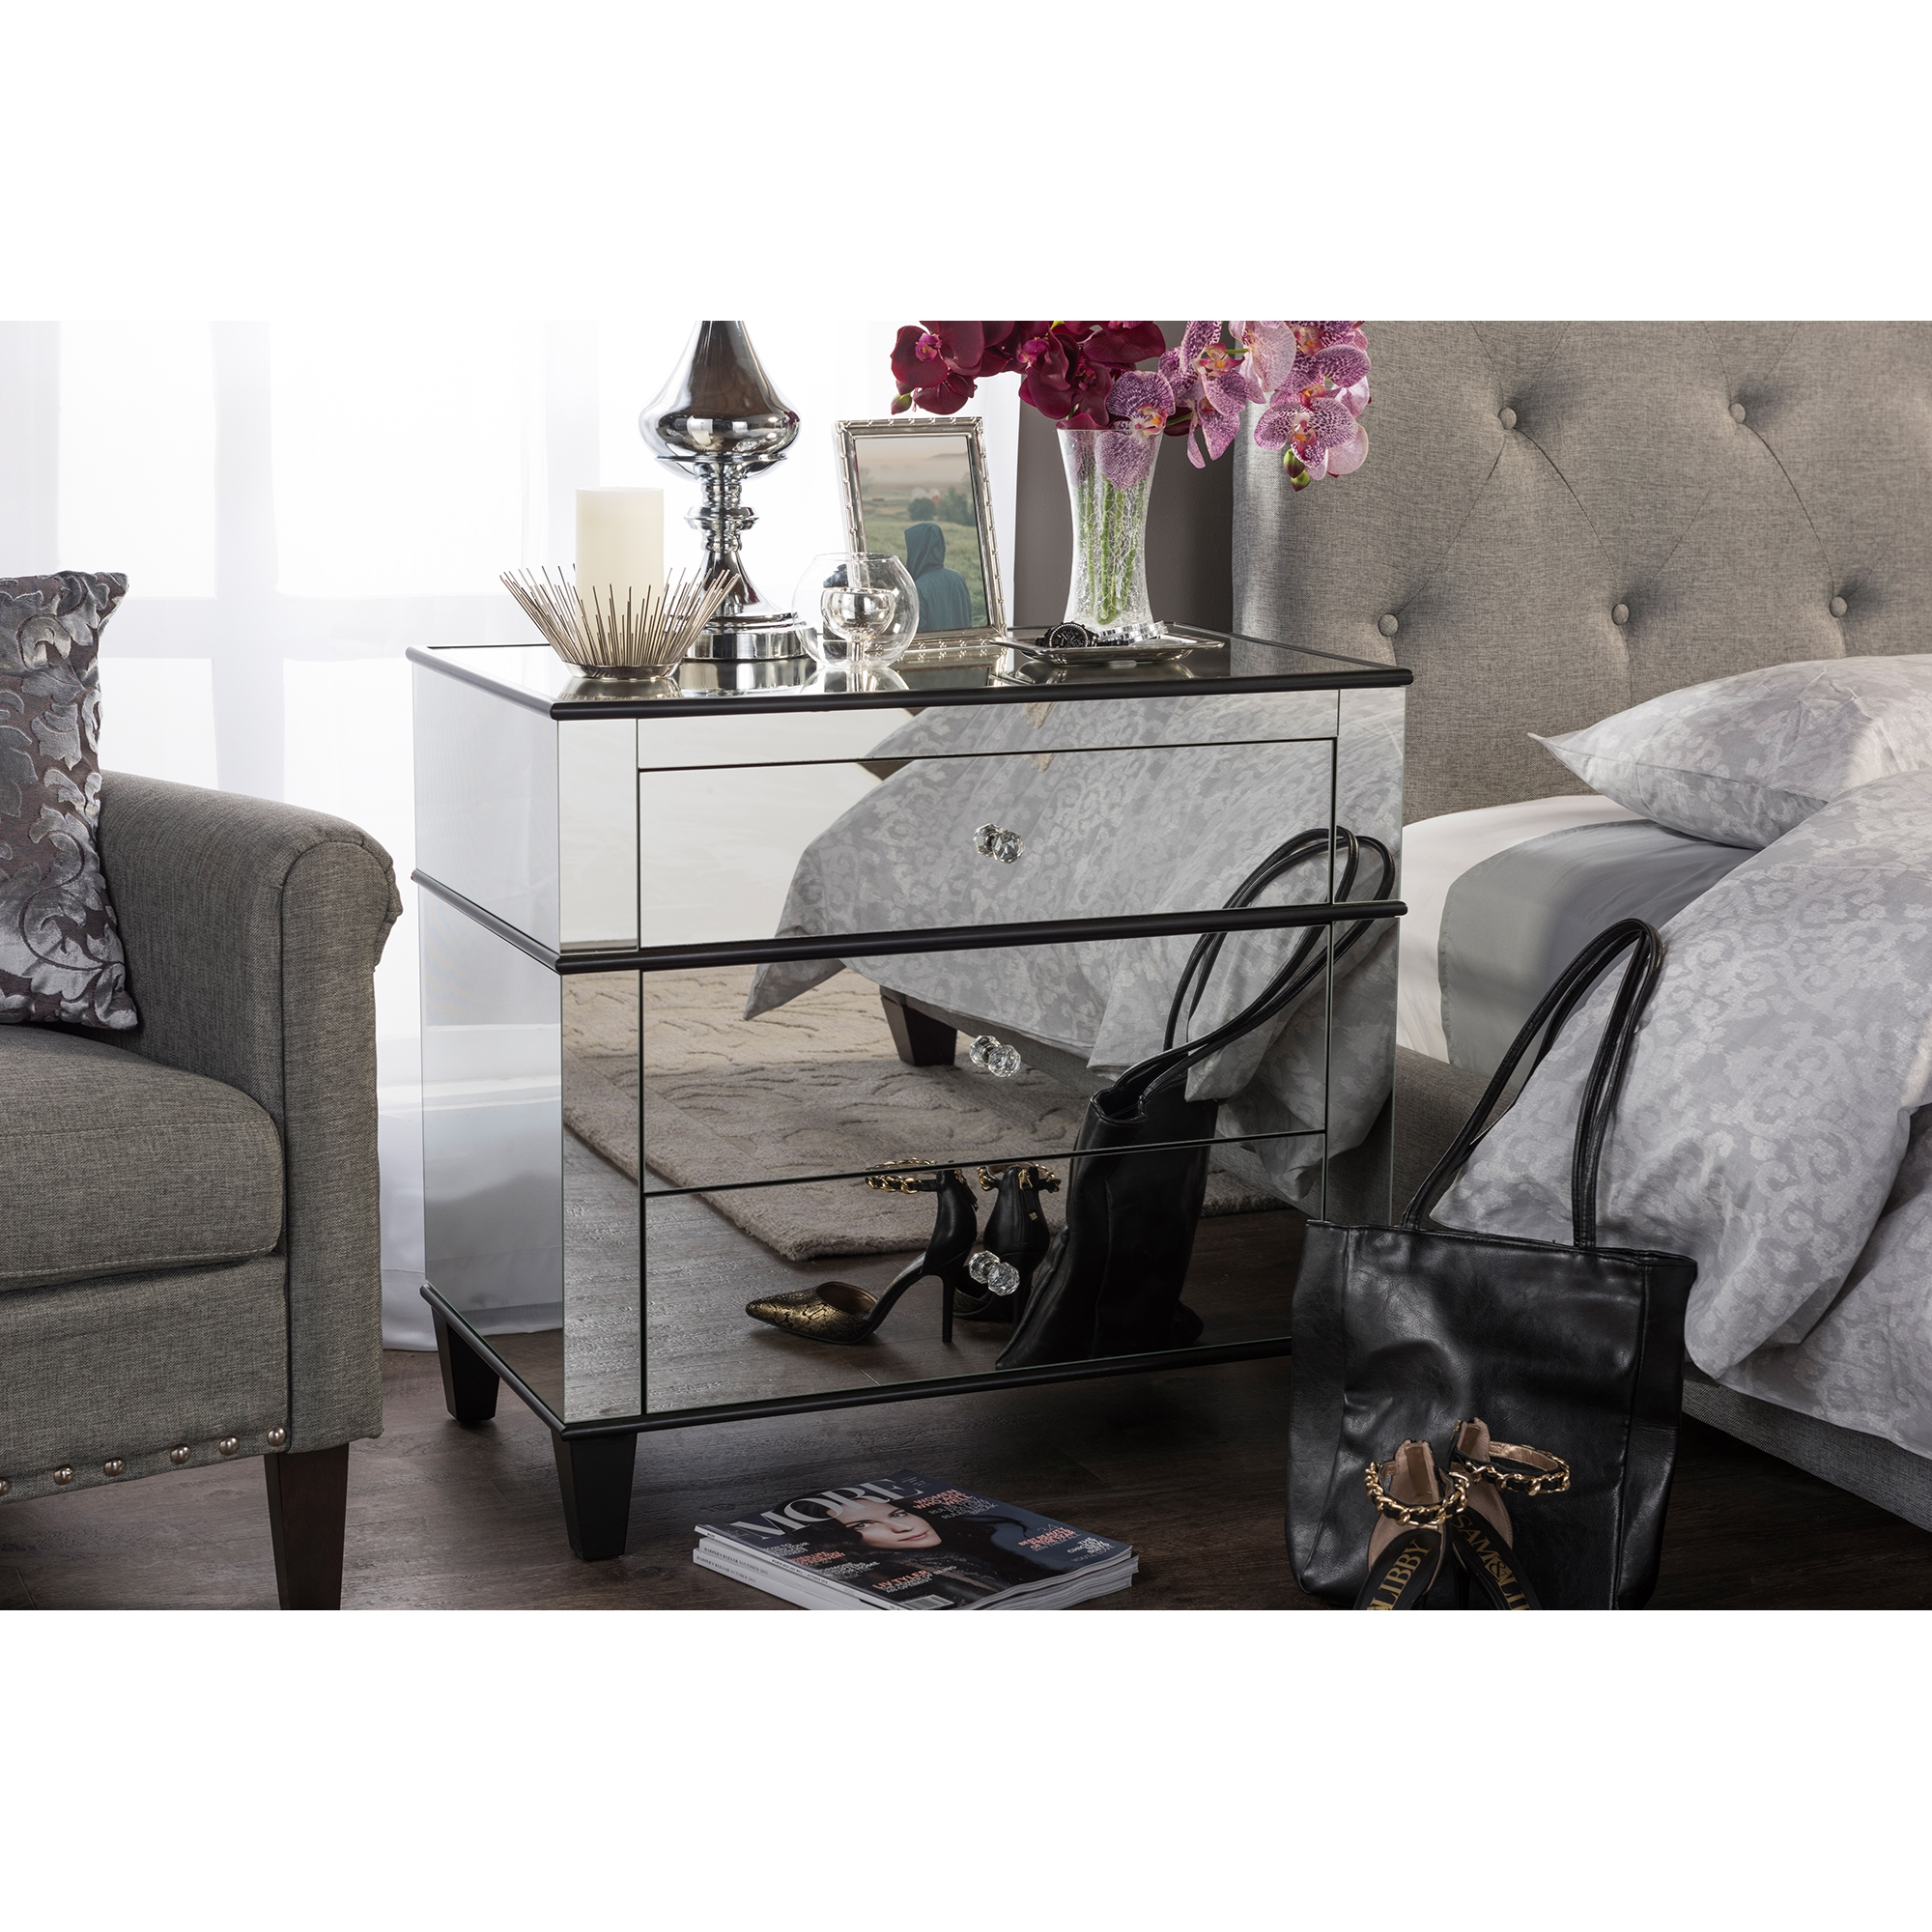 ... Baxton Studio Venetian Modern And Contemporary Hollywood Regency  Glamour Style 3 Drawer Mirrored Storage Chest